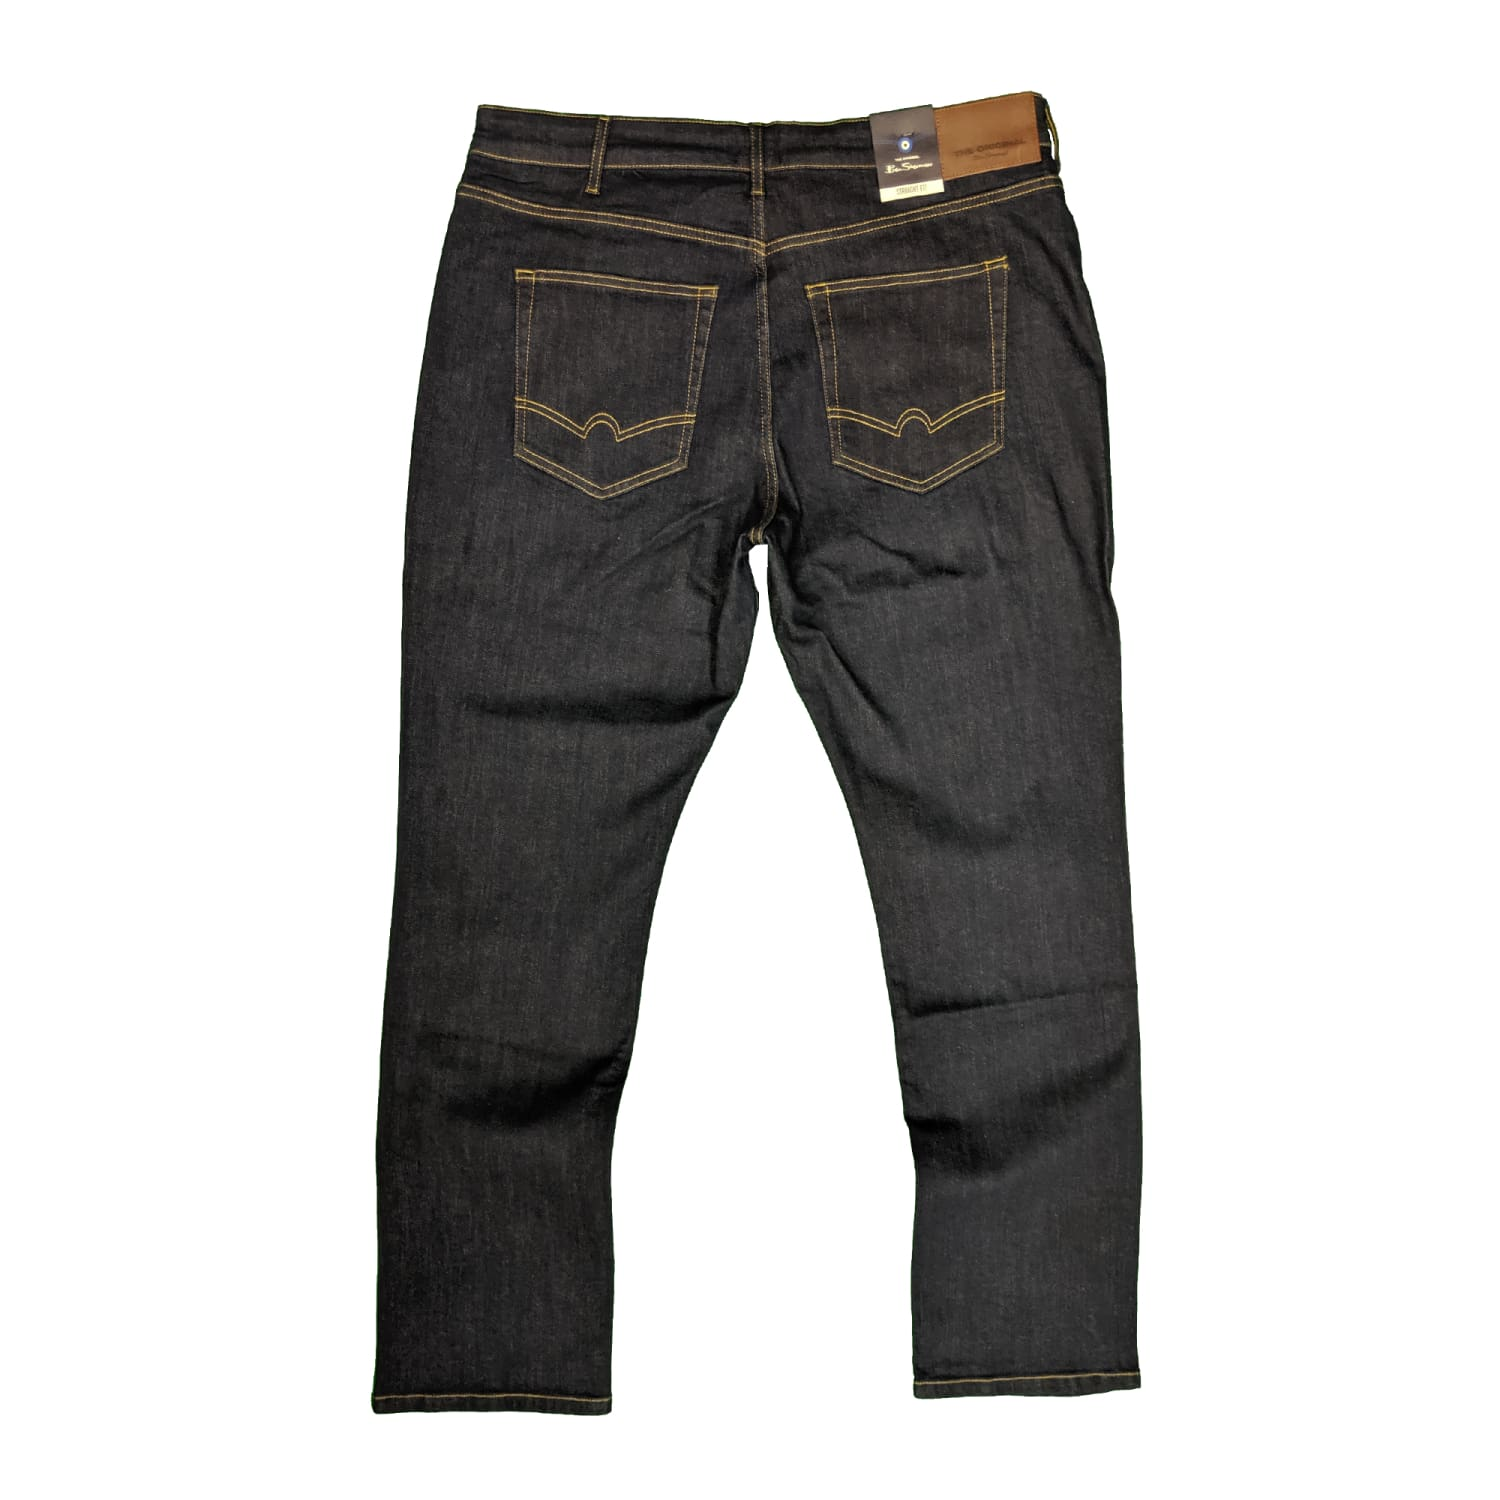 Ben Sherman Jeans - 0060682IL - Denim 1